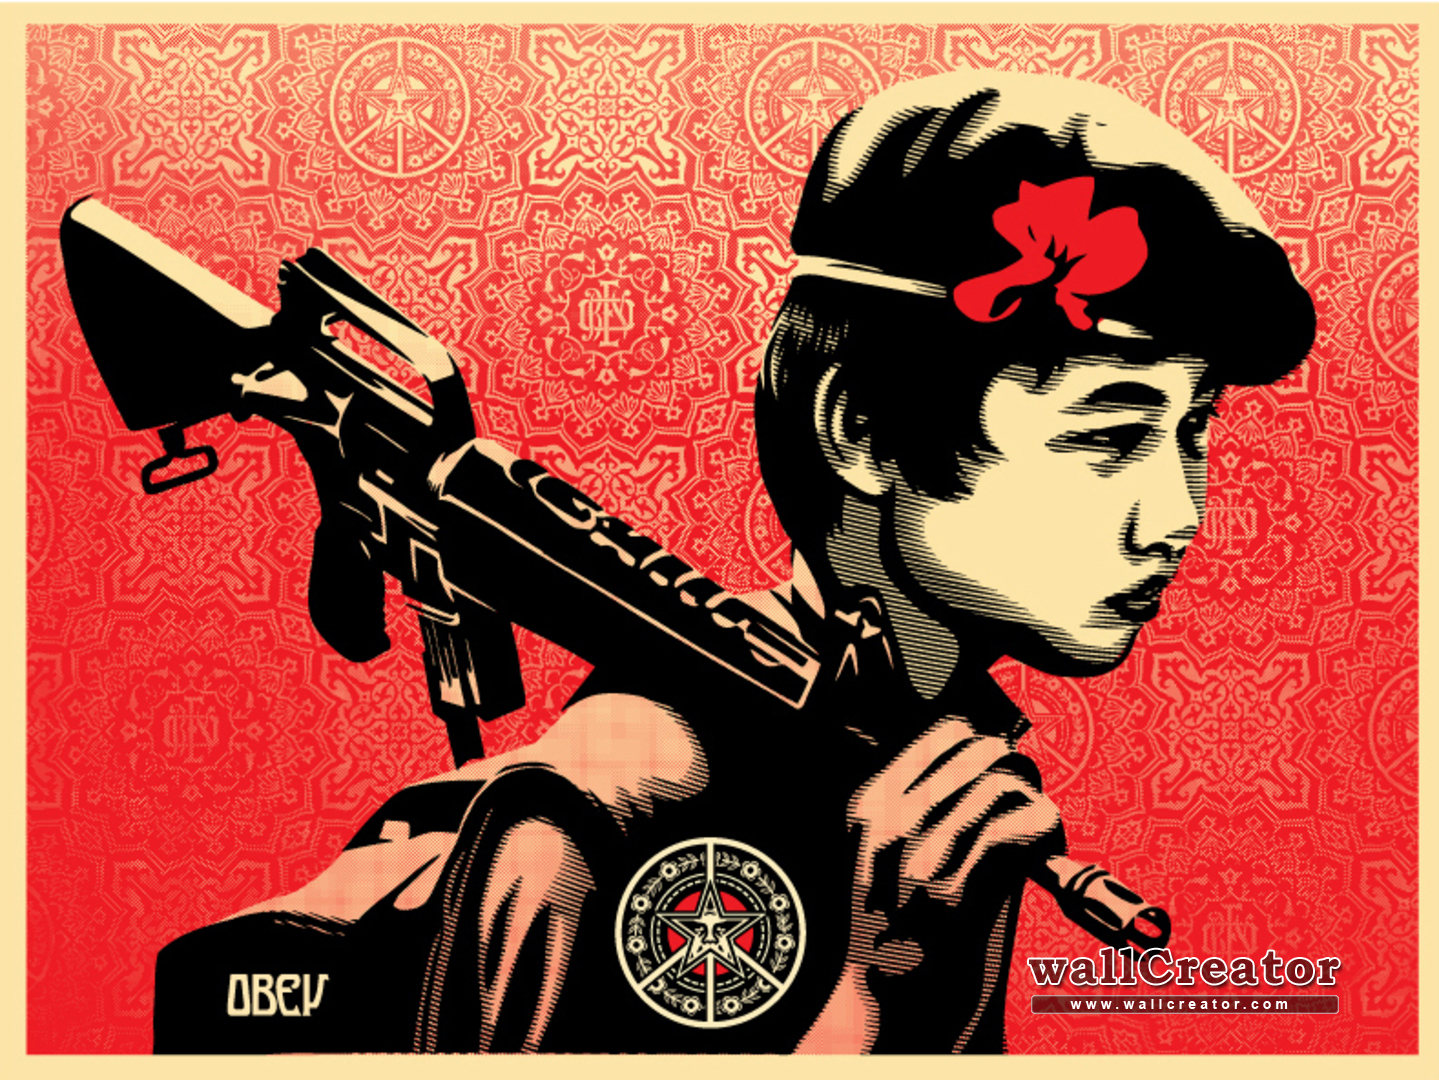 obey   1920 1080 Wallpaper 1439x1080